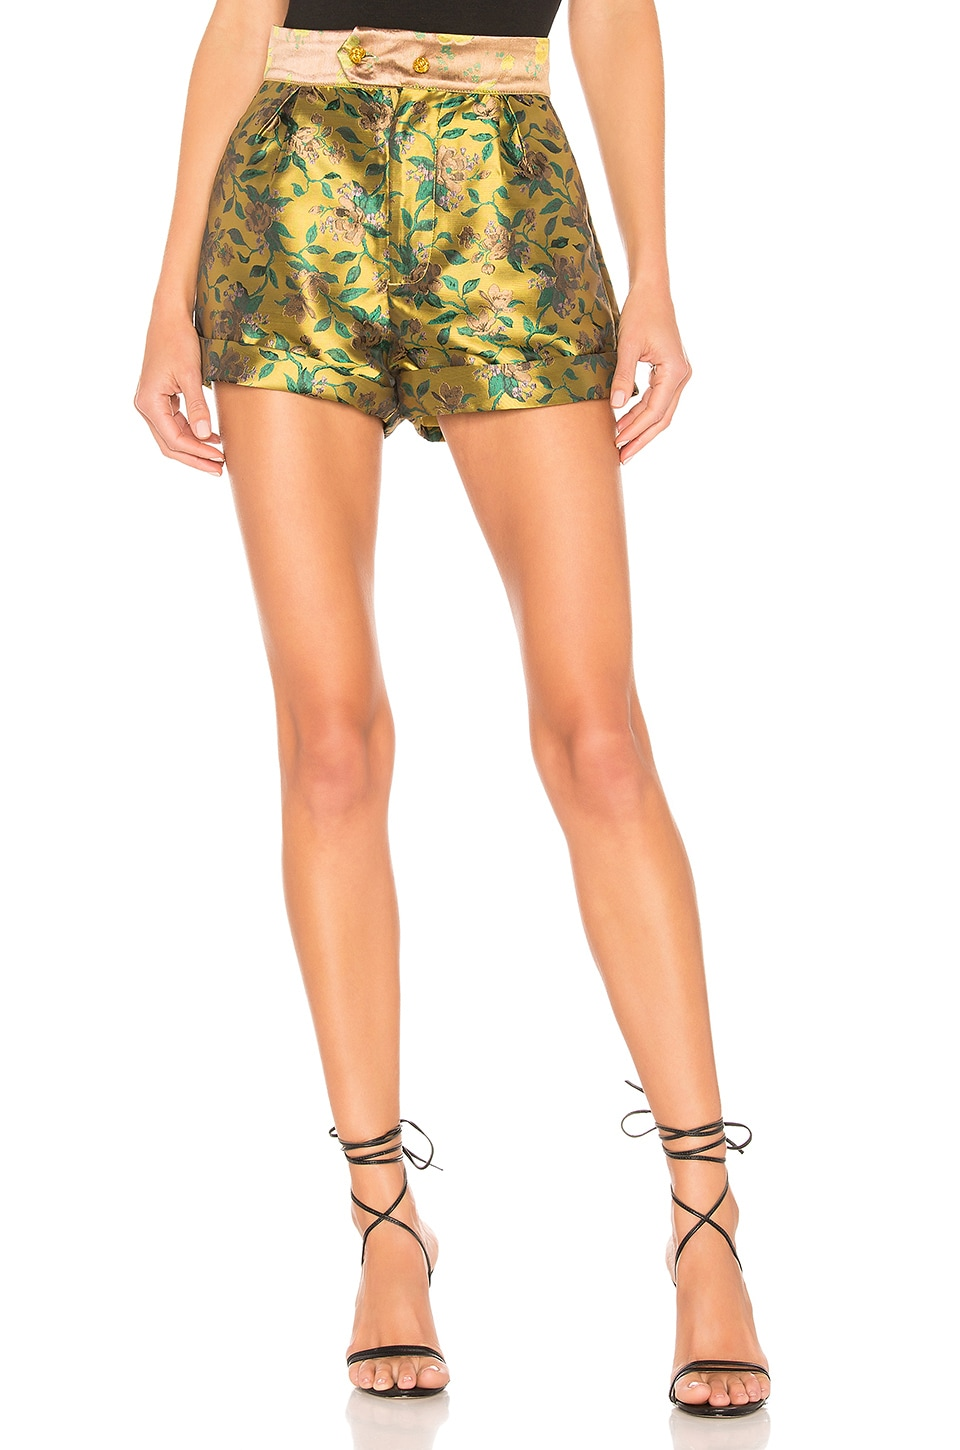 House of Harlow 1960 X REVOLVE Bismark Short in Chartreuse Yellow